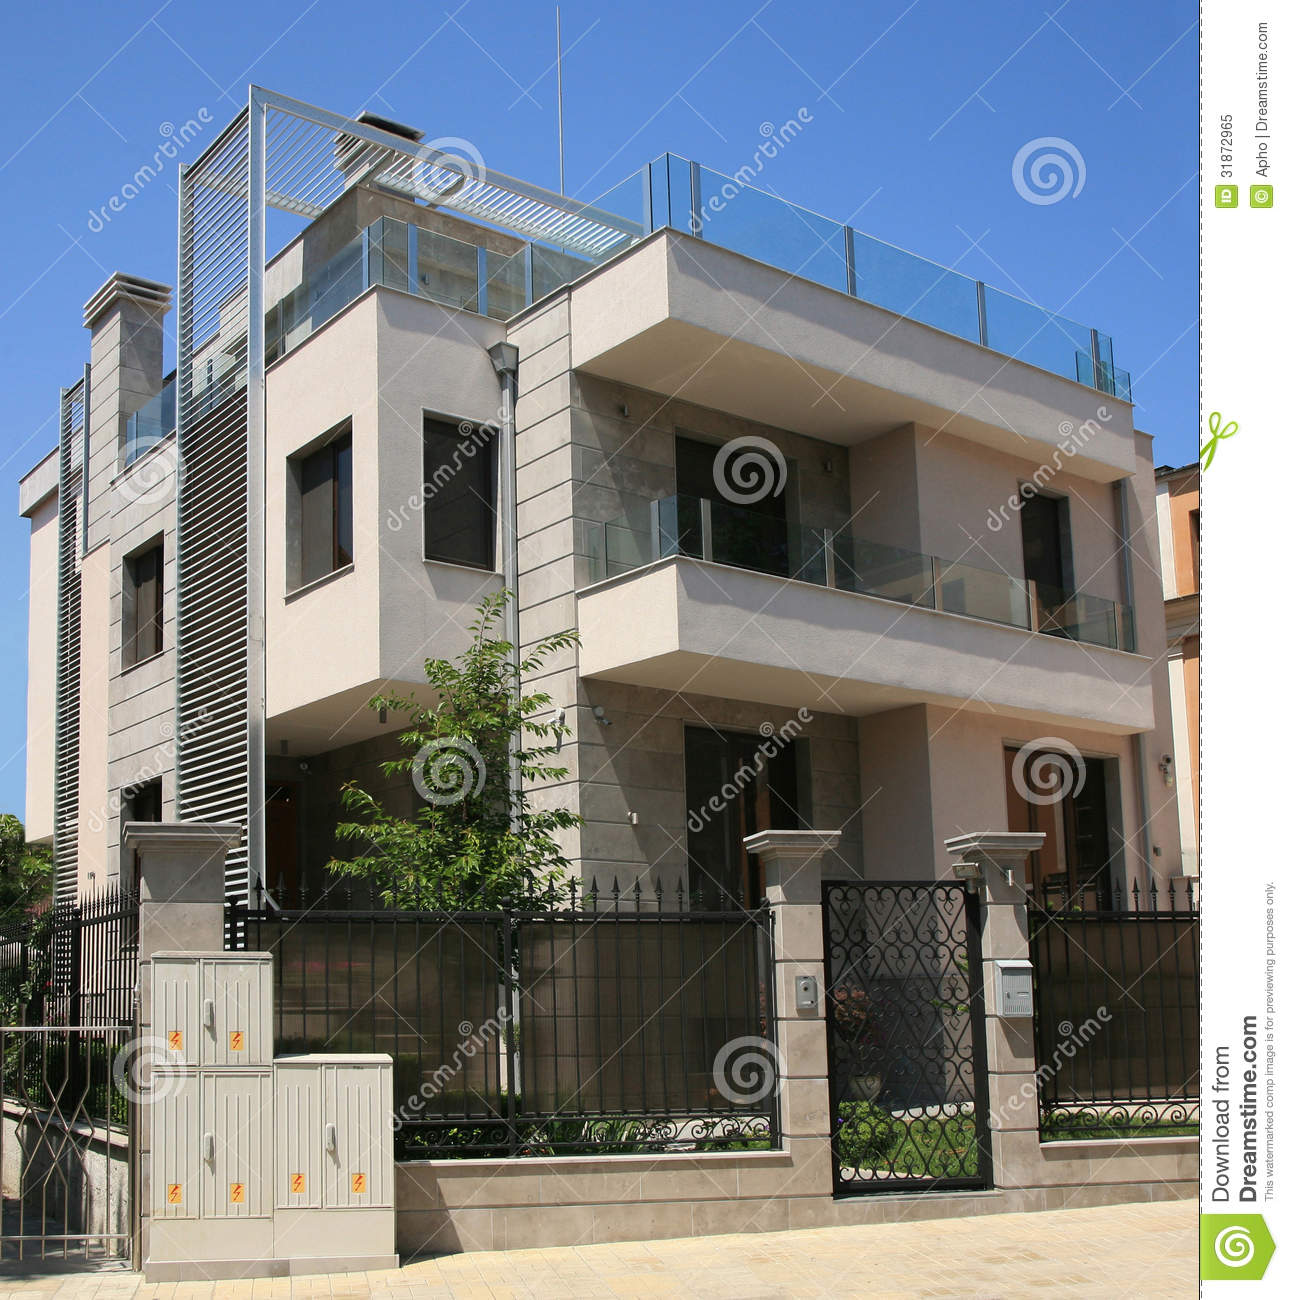 Modern house royalty free stock photo image 31872965 for Outer look of house